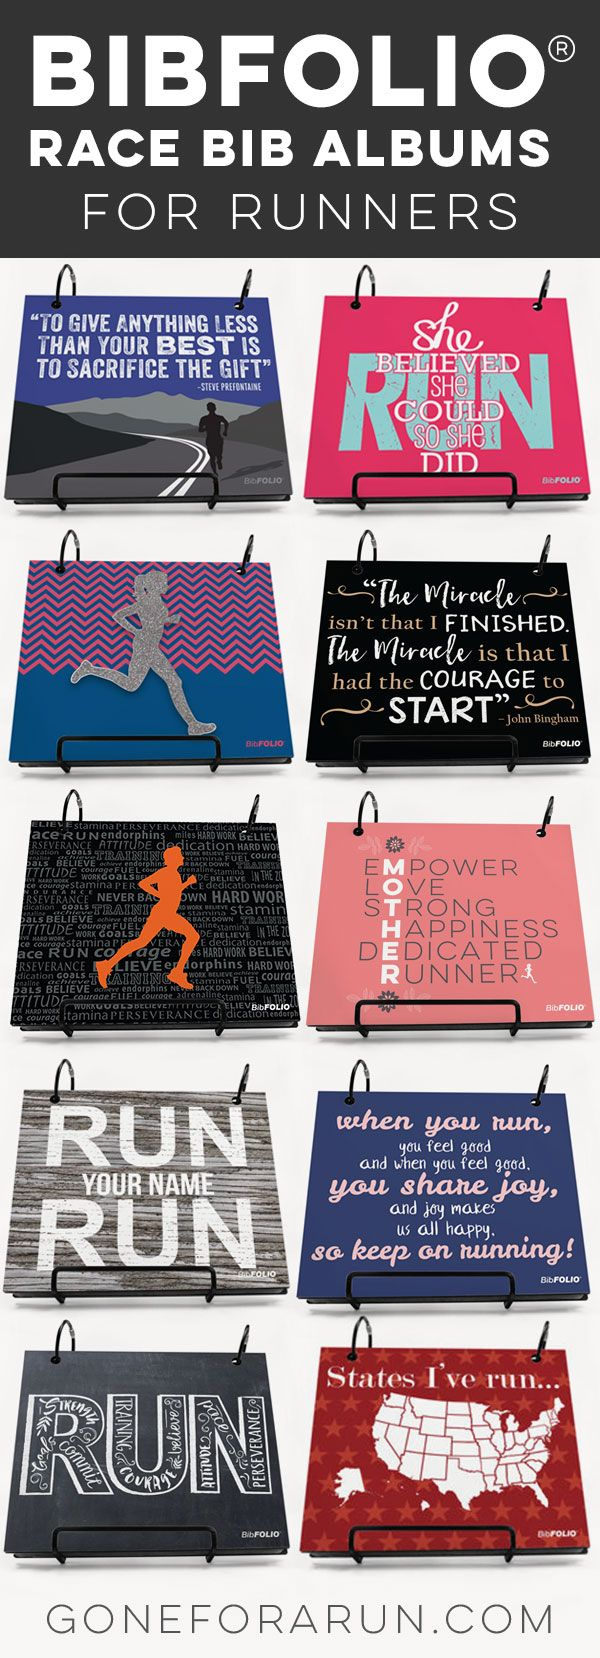 Show those hard-earned running bibs off in style with our BibFOLIO® Race Bib Albums. Choose between our classic wooden albums with bold colors and styles including chalkboard, custom printed photo, and rustic wood designs, or our subtle engraved bamboo albums. Look no further for a gift runners used to only dream of.